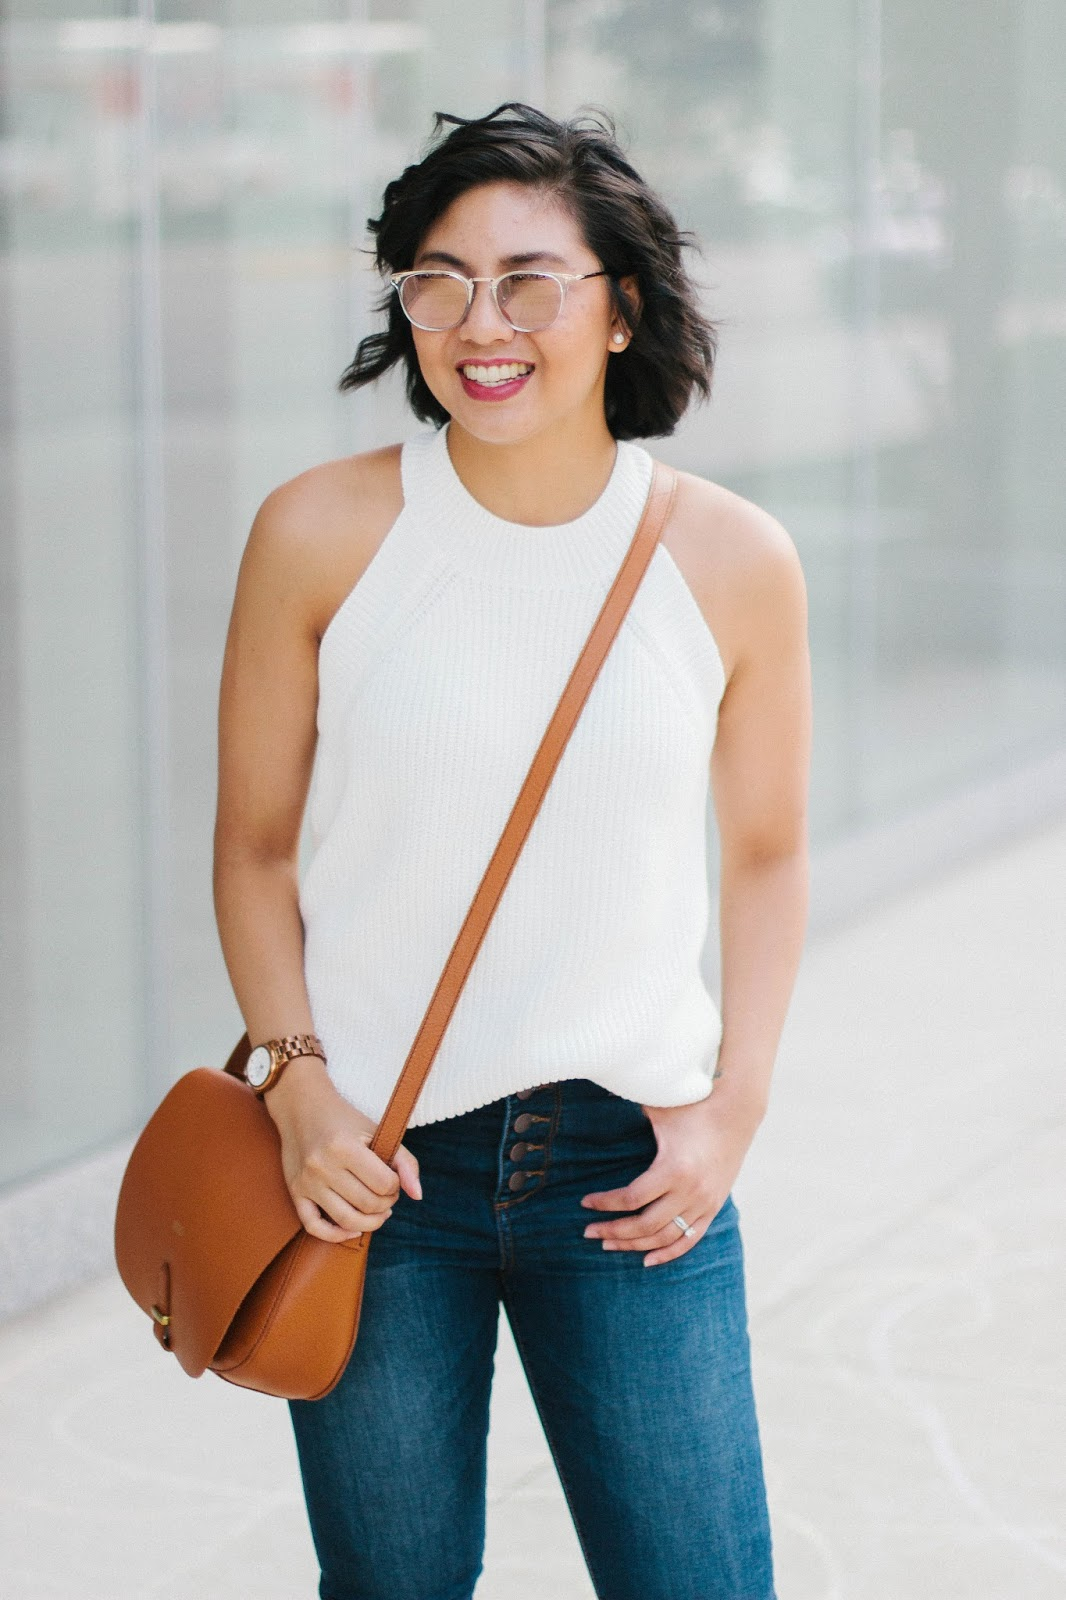 Reasons why transitional outfits like wearing sleeveless sweaters are great for Fall